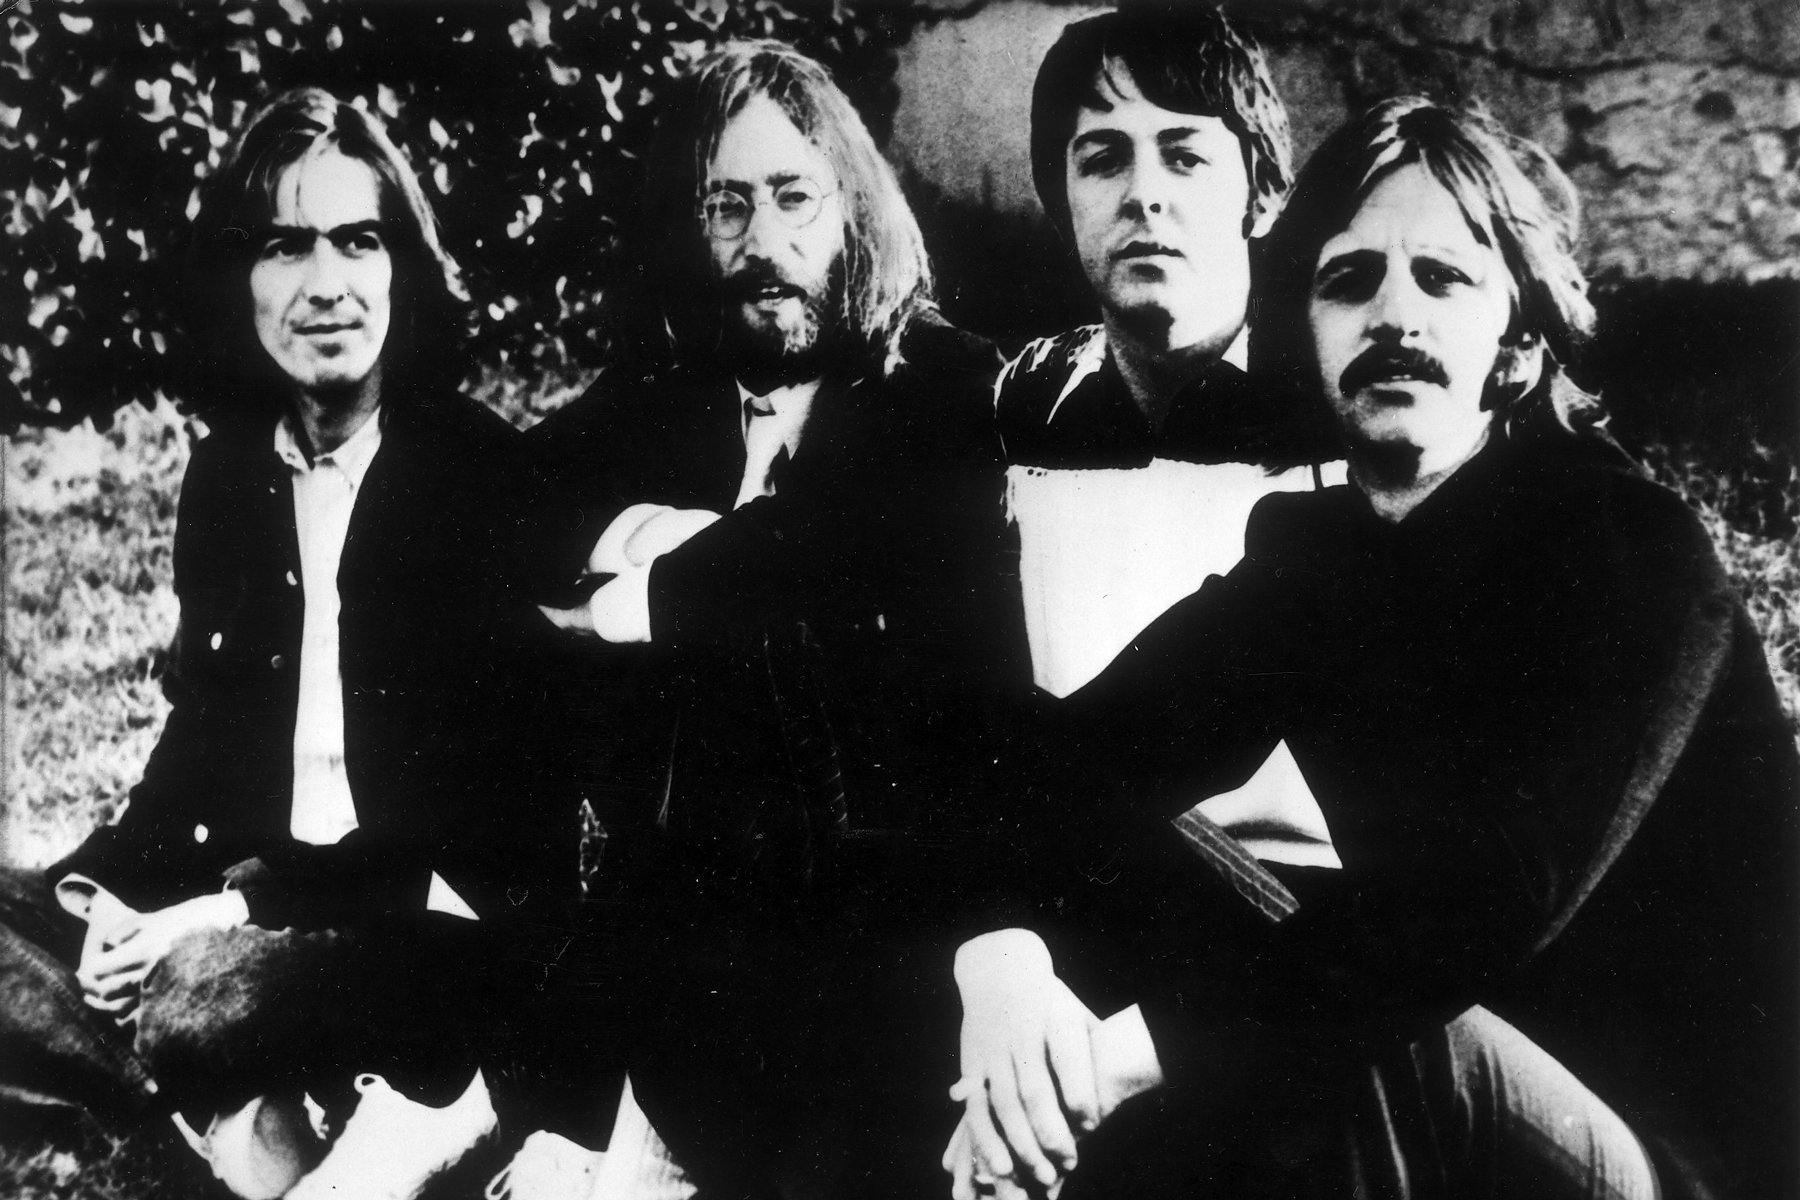 500 Greatest Albums: How the Beatles Made Magic on the Verge of a Breakup With 'Abbey Road'